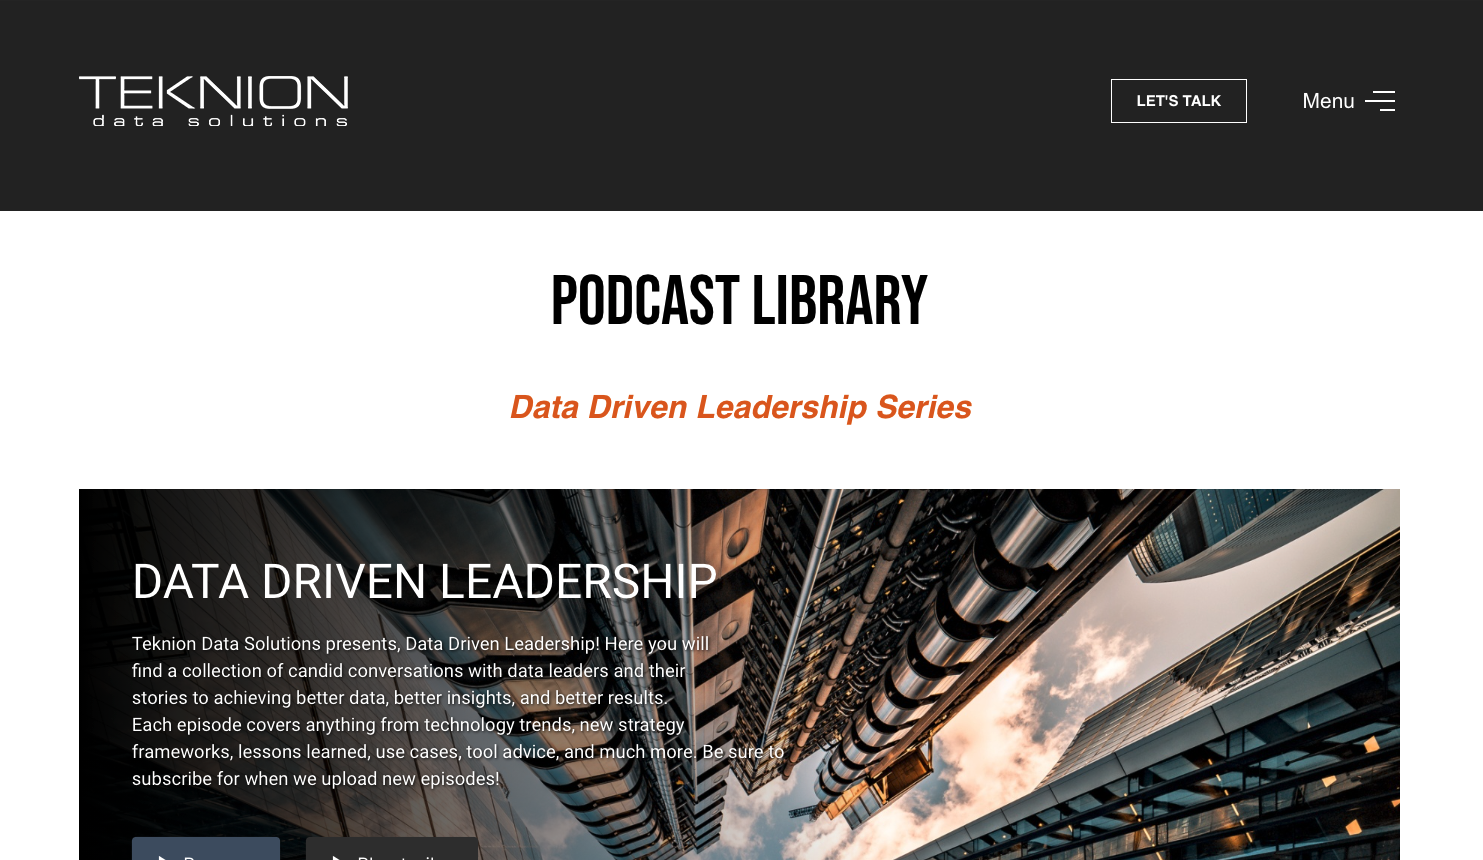 Podcast Library Page